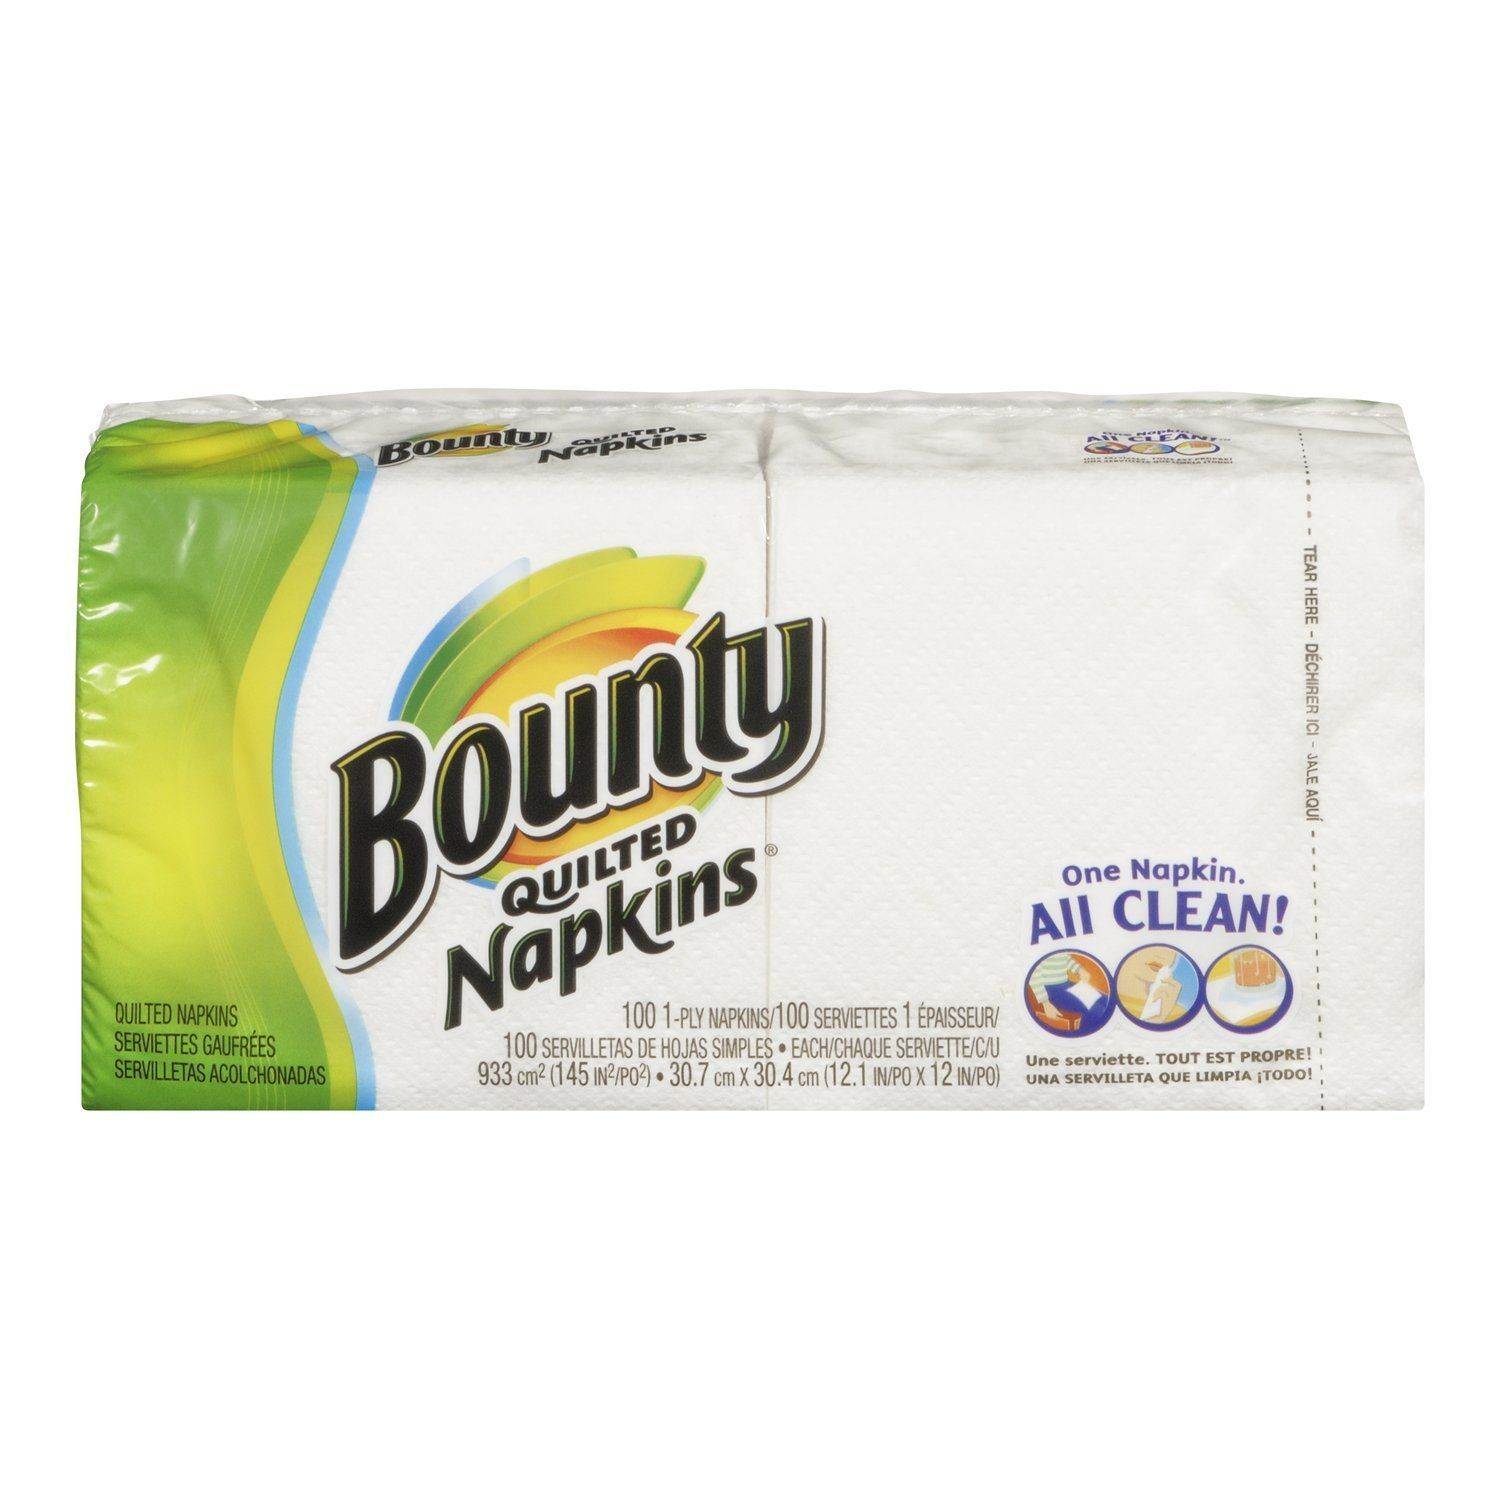 Bounty quilted napkins white 100count napkins pack of